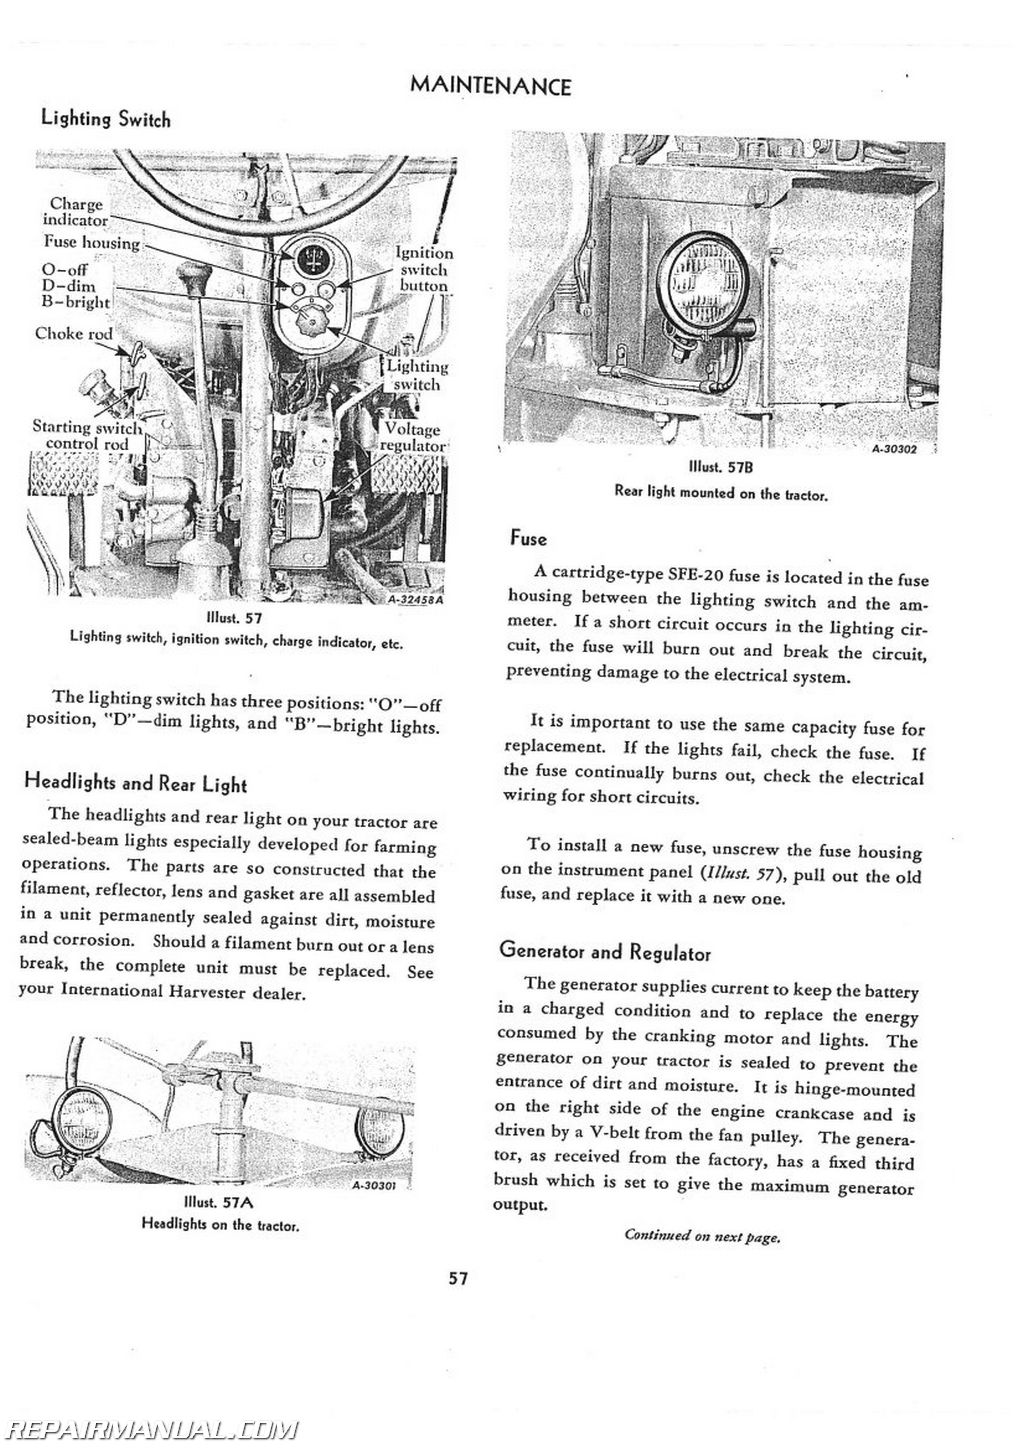 Magnificent Ih Farmall Super A Wiring Diagram Elaboration Source · Farmall  Super Mta Wiring Diagram Diagrams